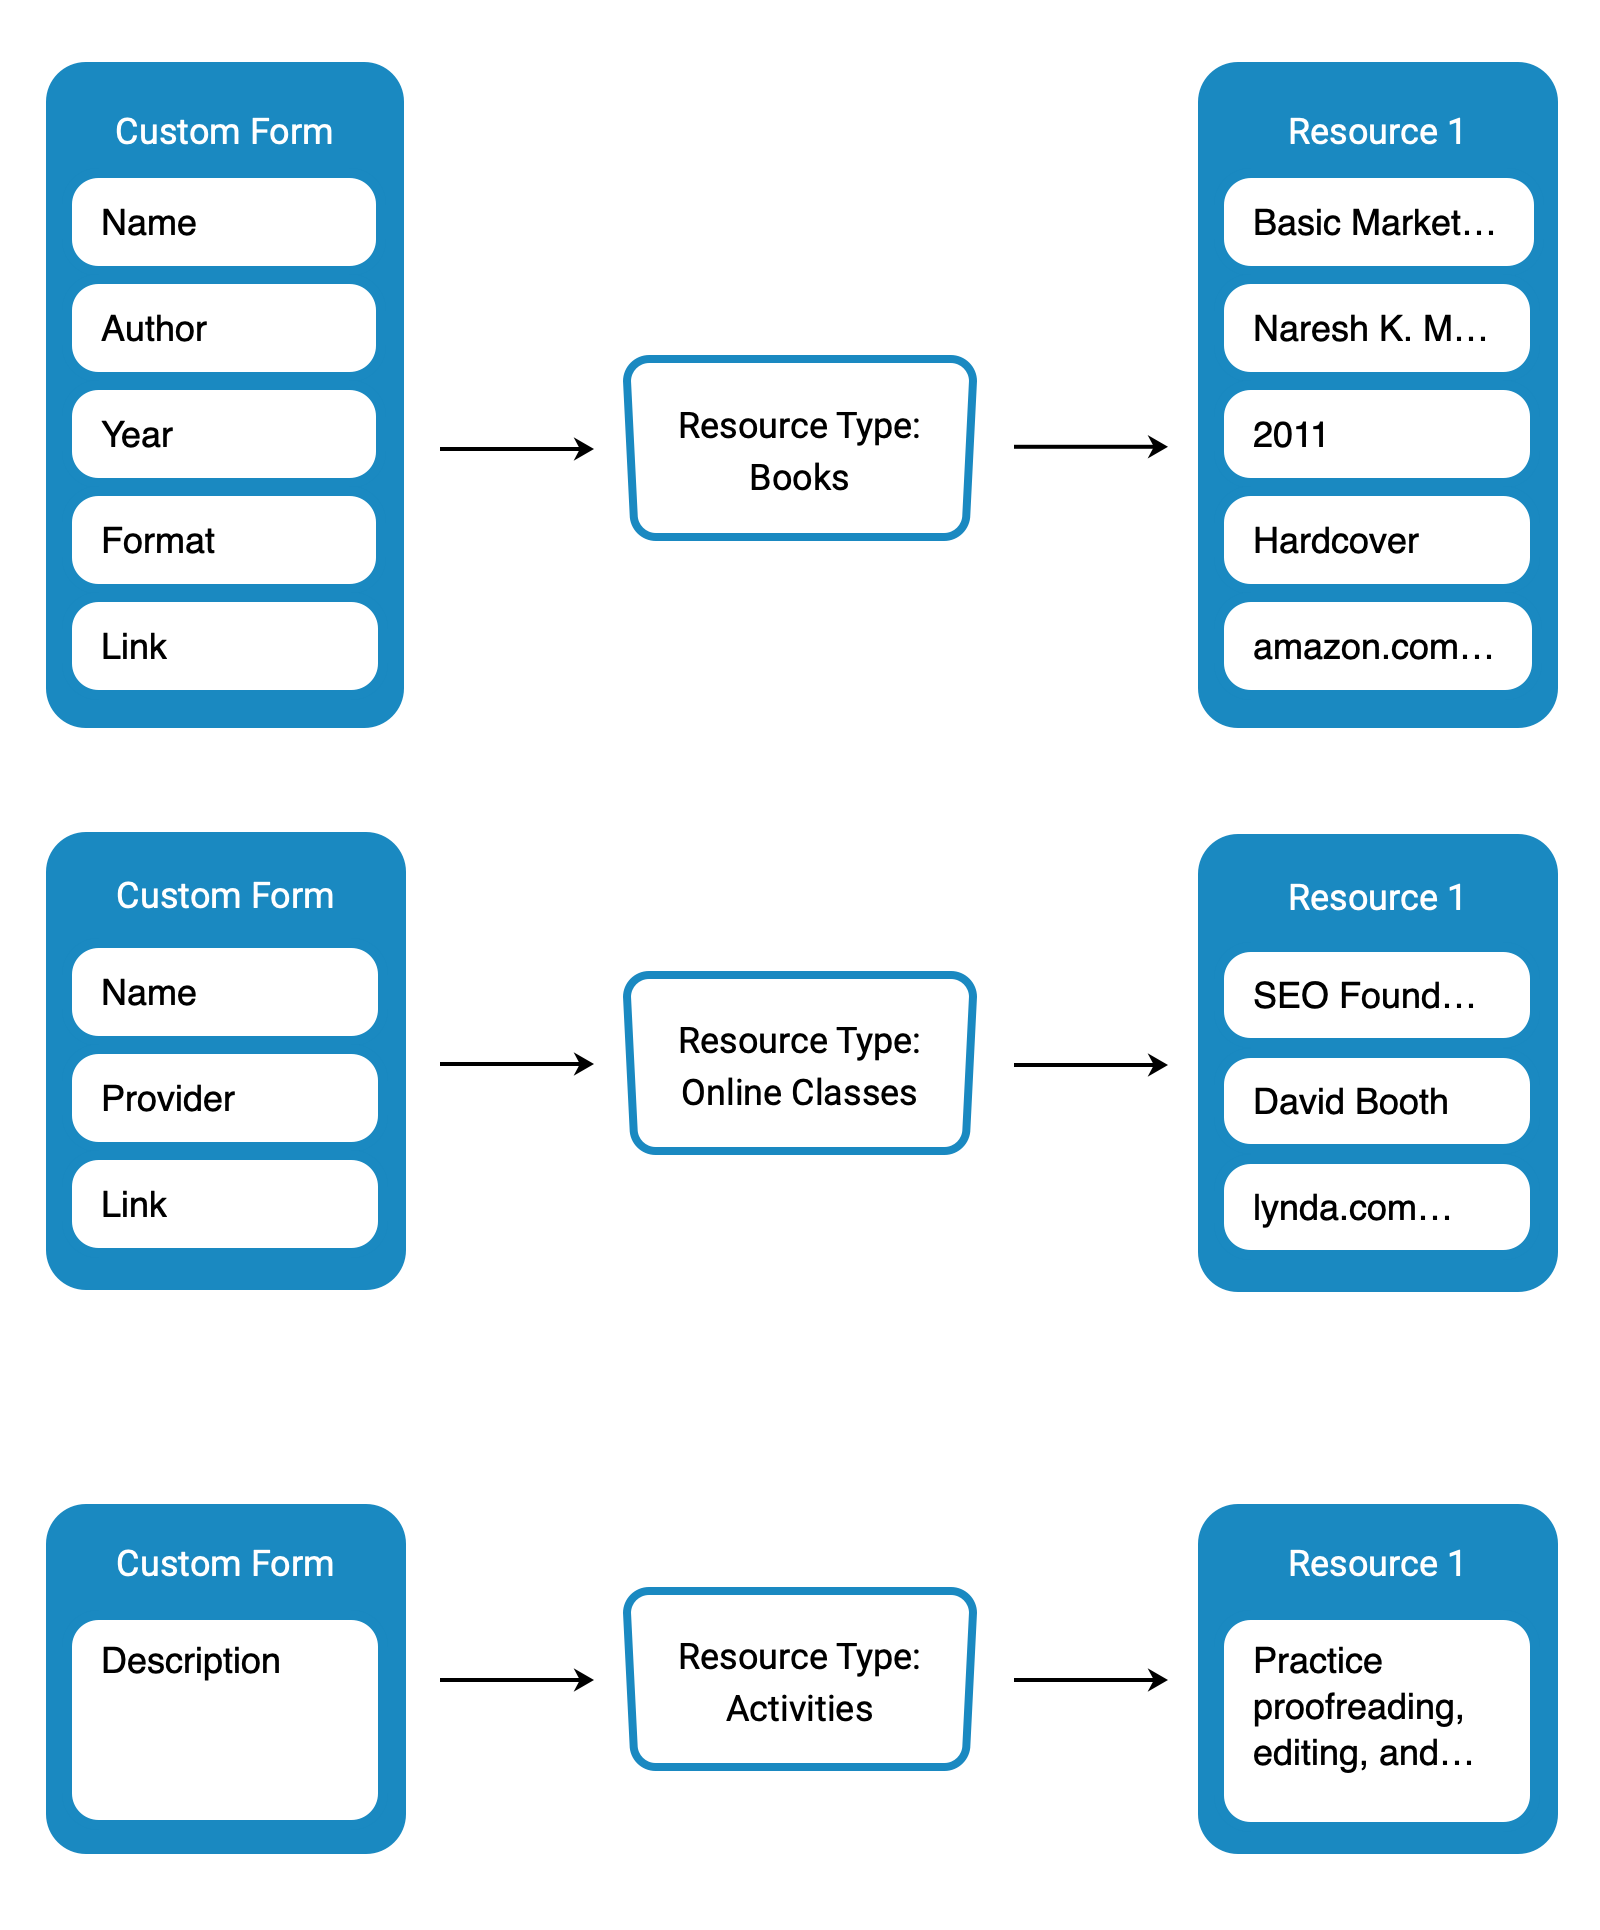 An overview of how custom forms populate learning resources